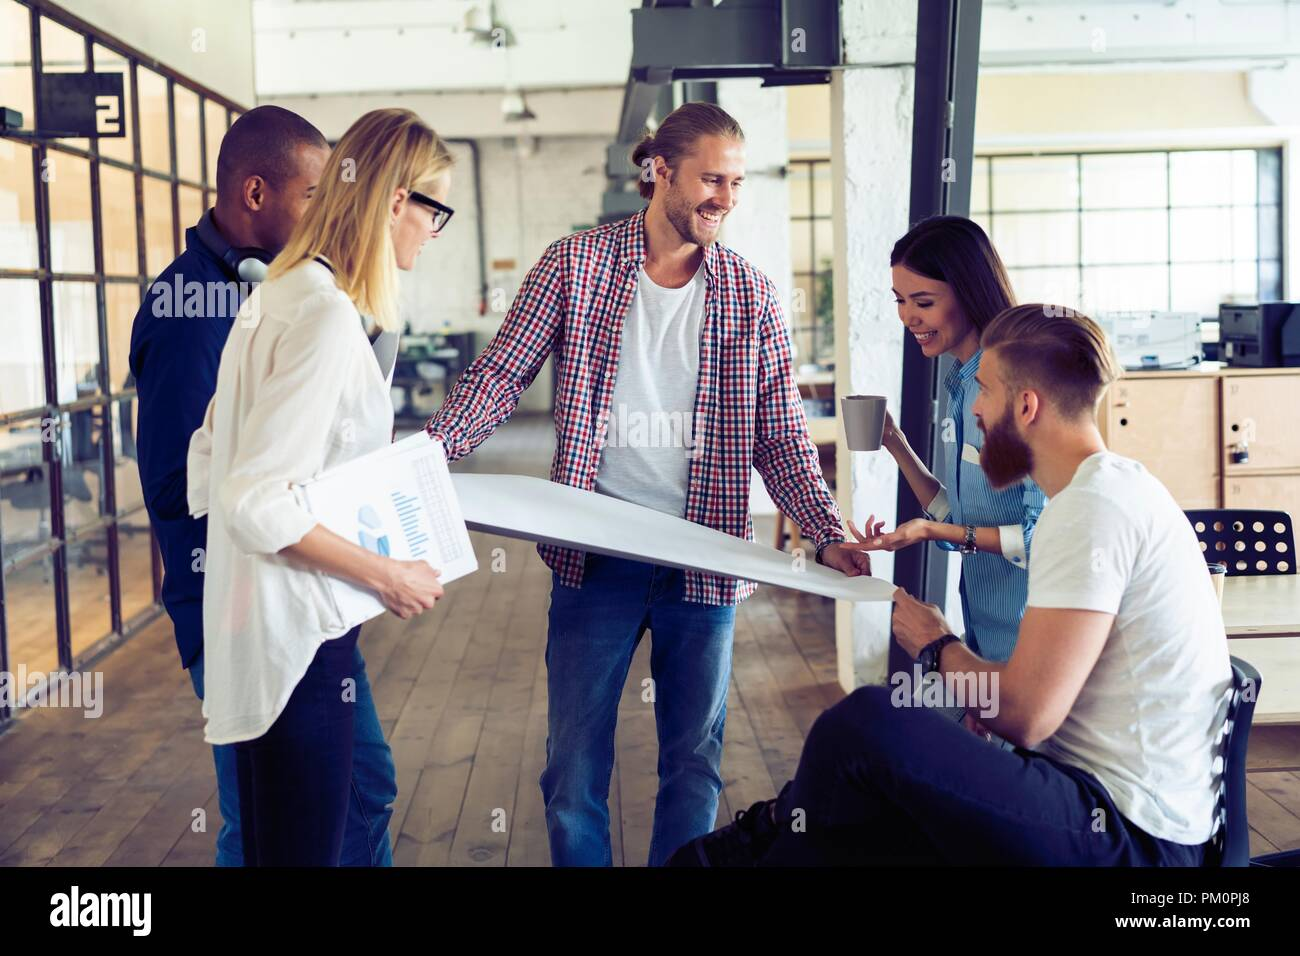 Working as a team. Full length of young modern people in smart casual wear planning business strategy while young woman pointing at large paper in the office hallway. - Stock Image